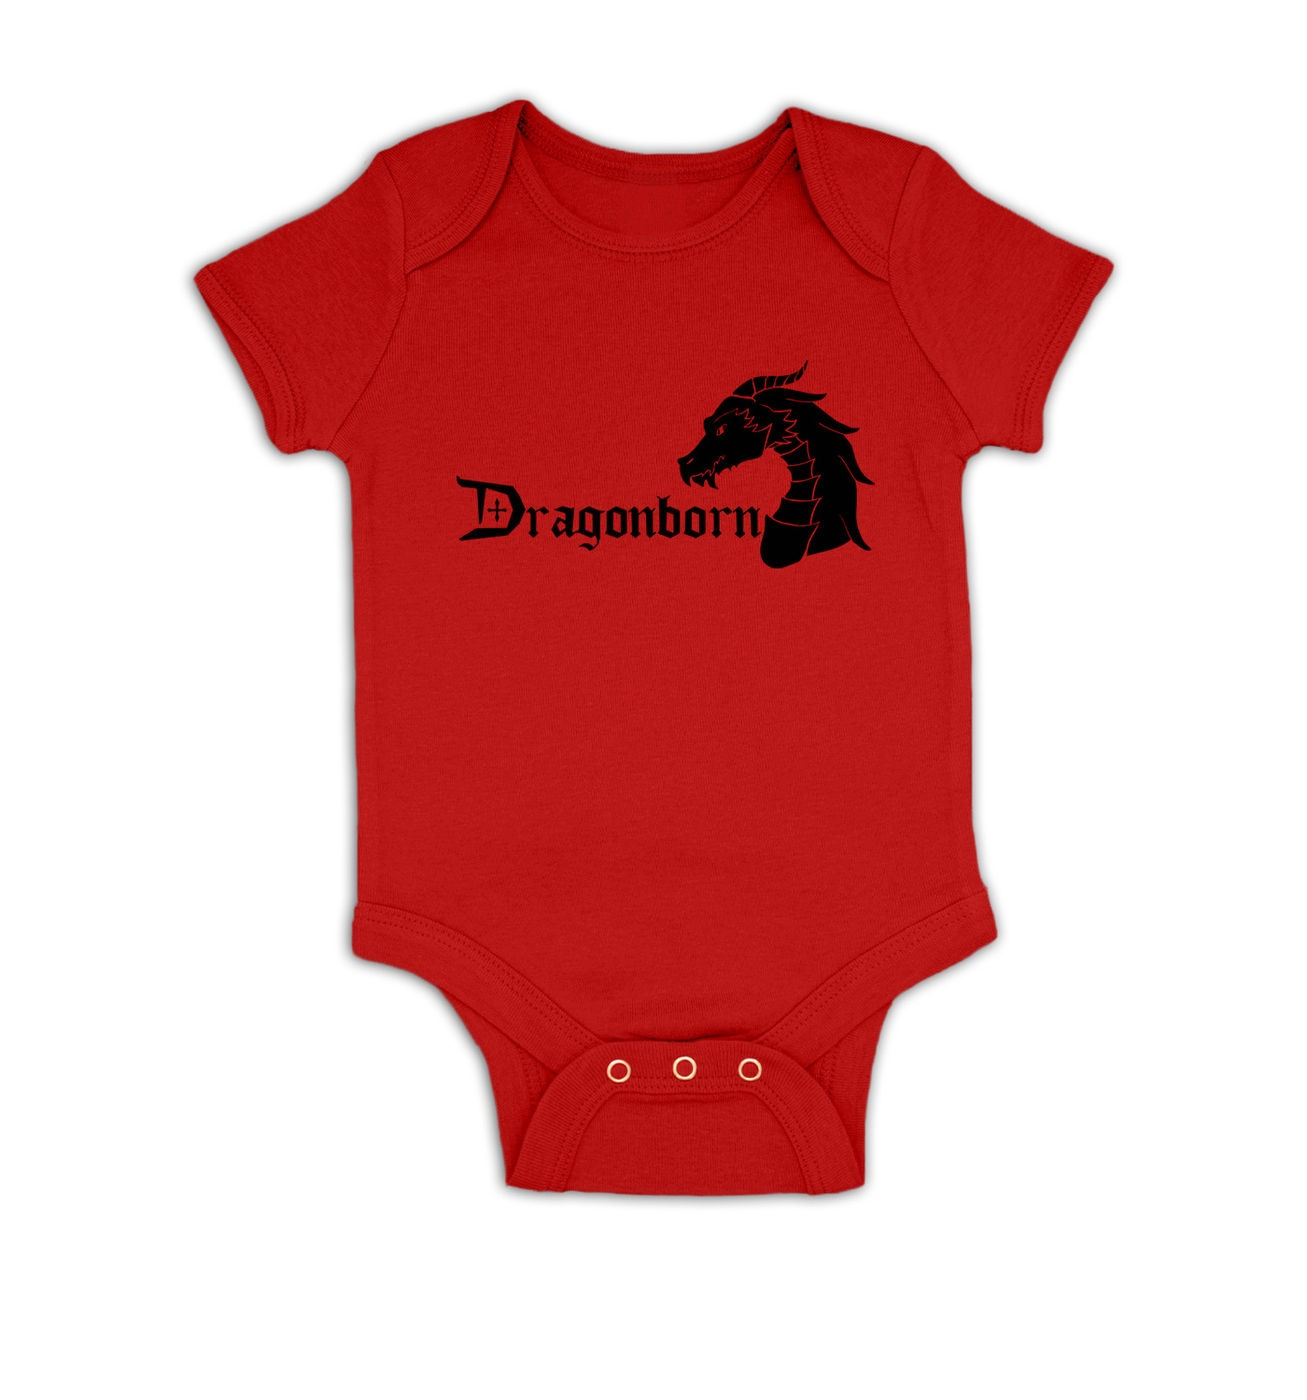 Dragonborn baby grow by Something Geeky